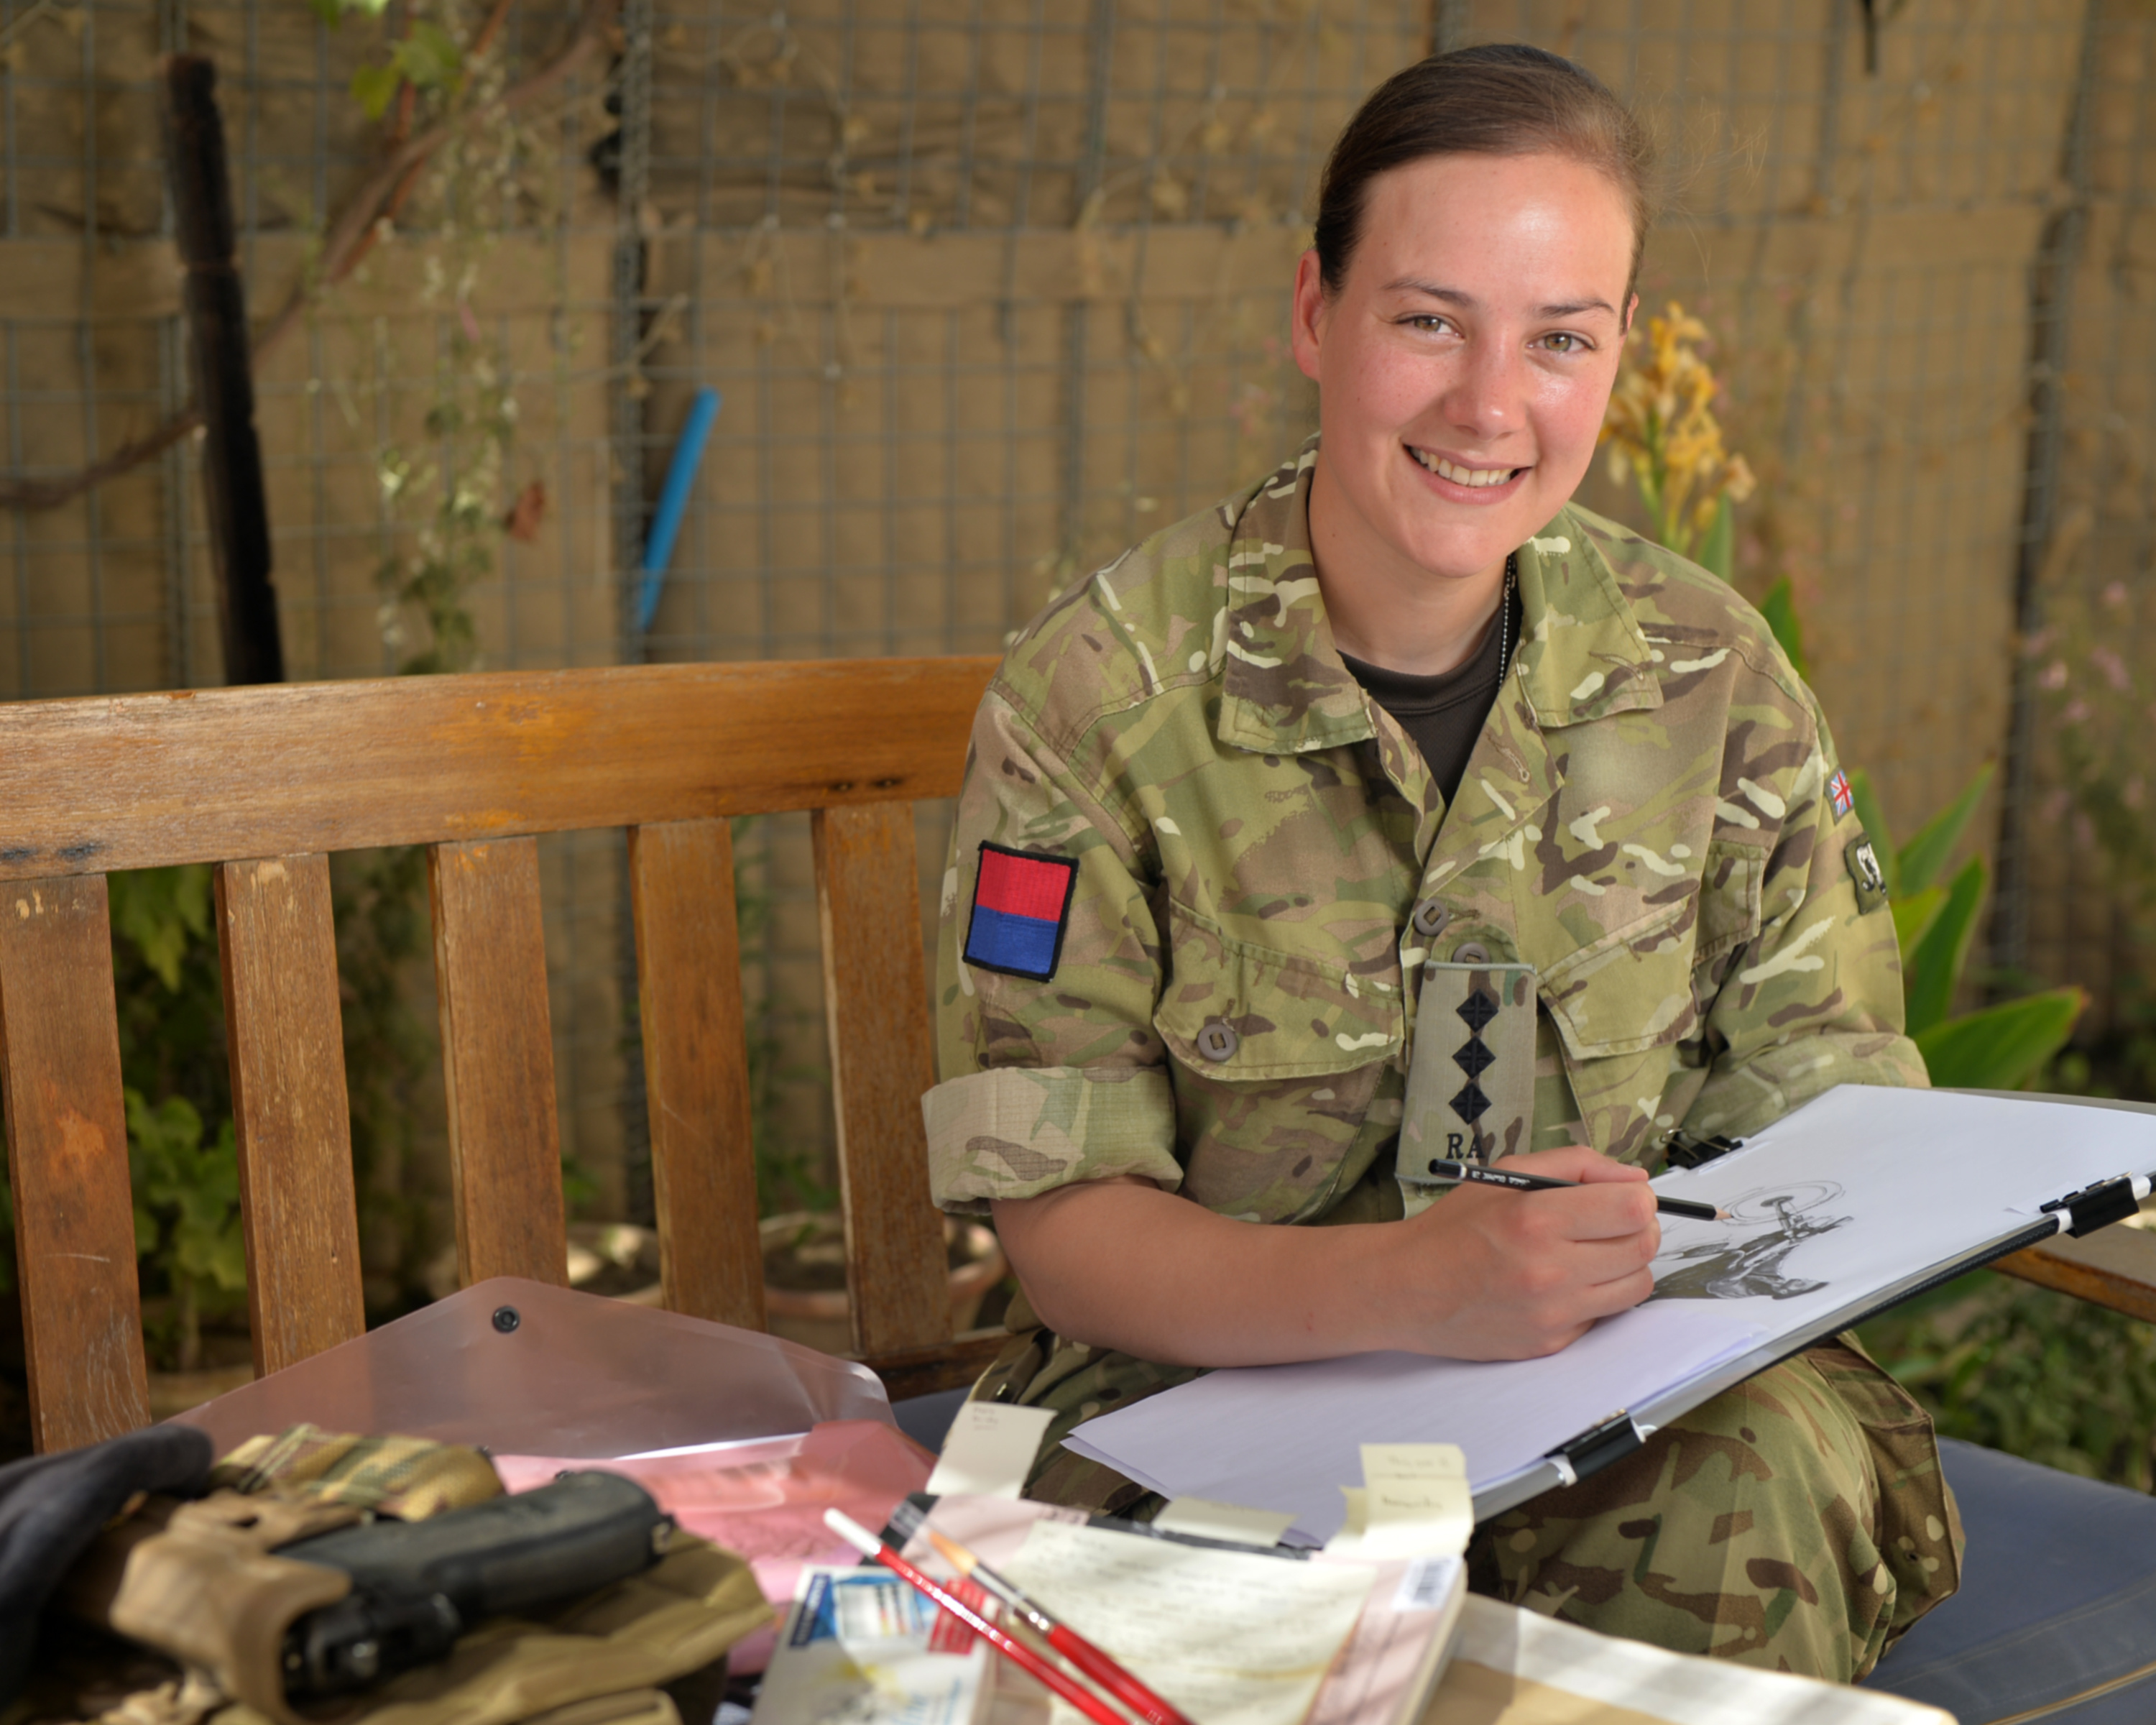 Drawing the official british army blog captain sophie whitaker 39 regt ra image by cpl si longworth rlc toneelgroepblik Images